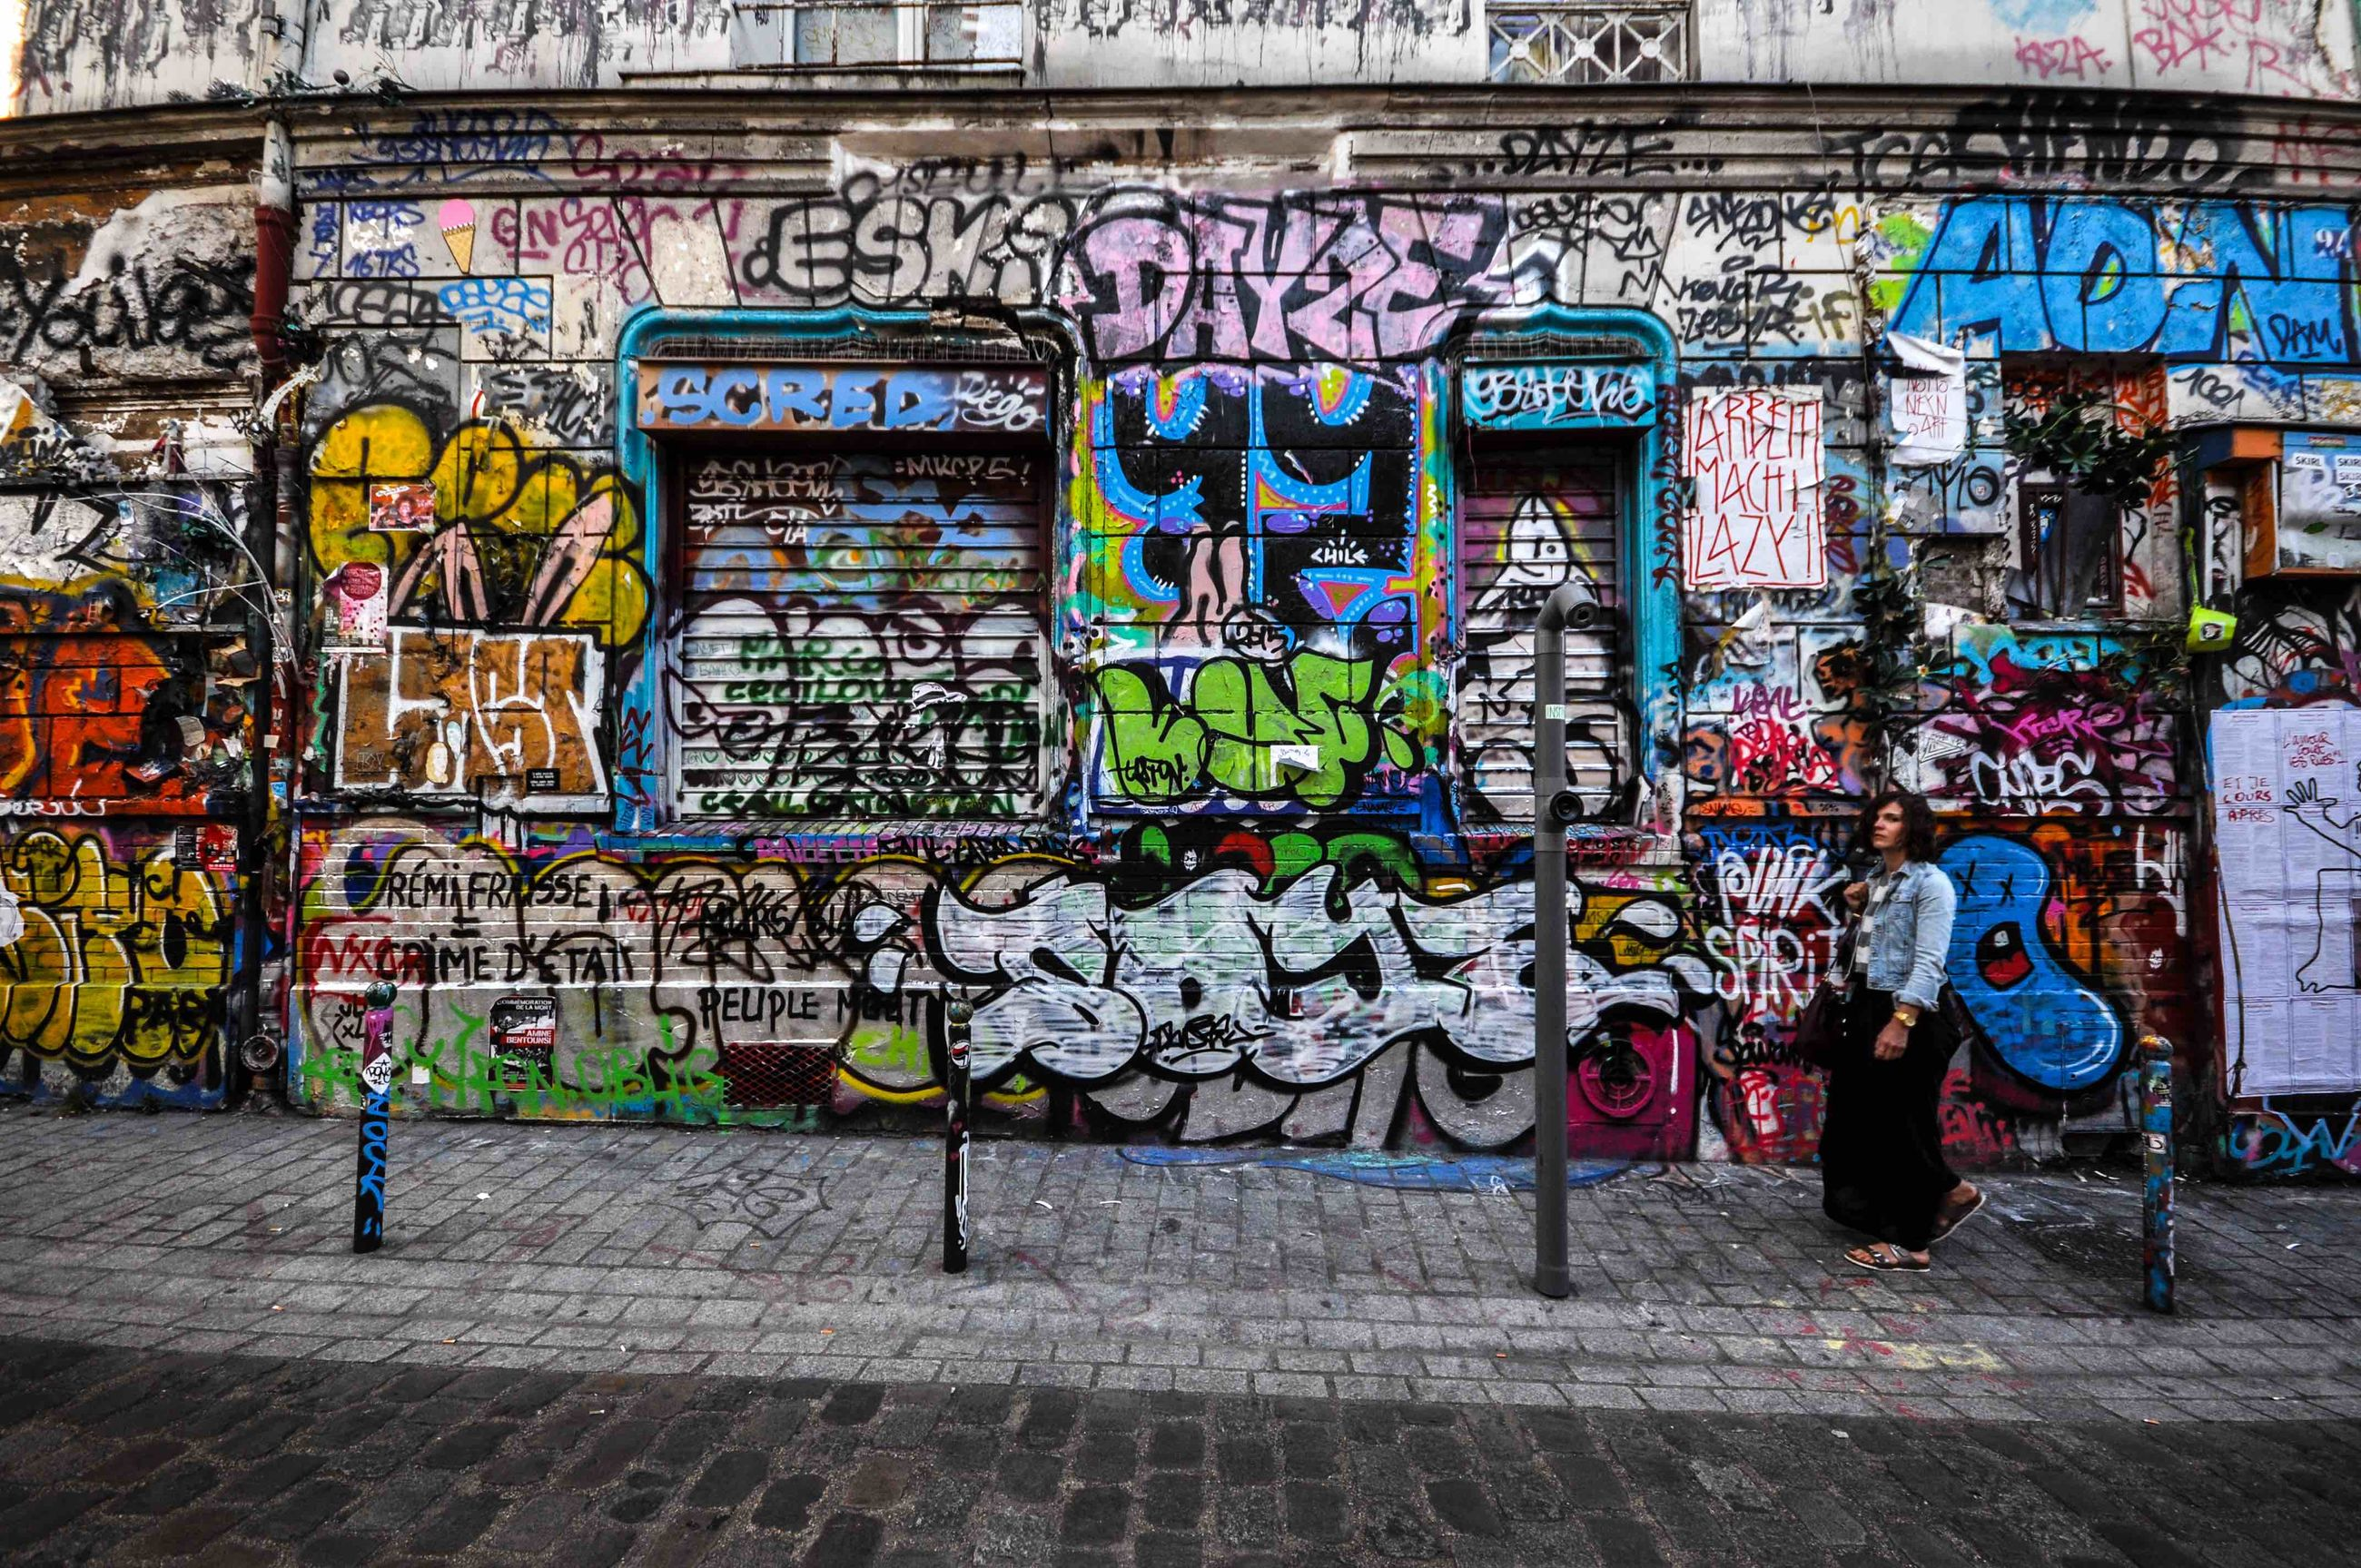 graffiti, built structure, architecture, art, art and craft, wall - building feature, creativity, text, building exterior, multi colored, street art, western script, vandalism, wall, mural, communication, street, human representation, day, non-western script